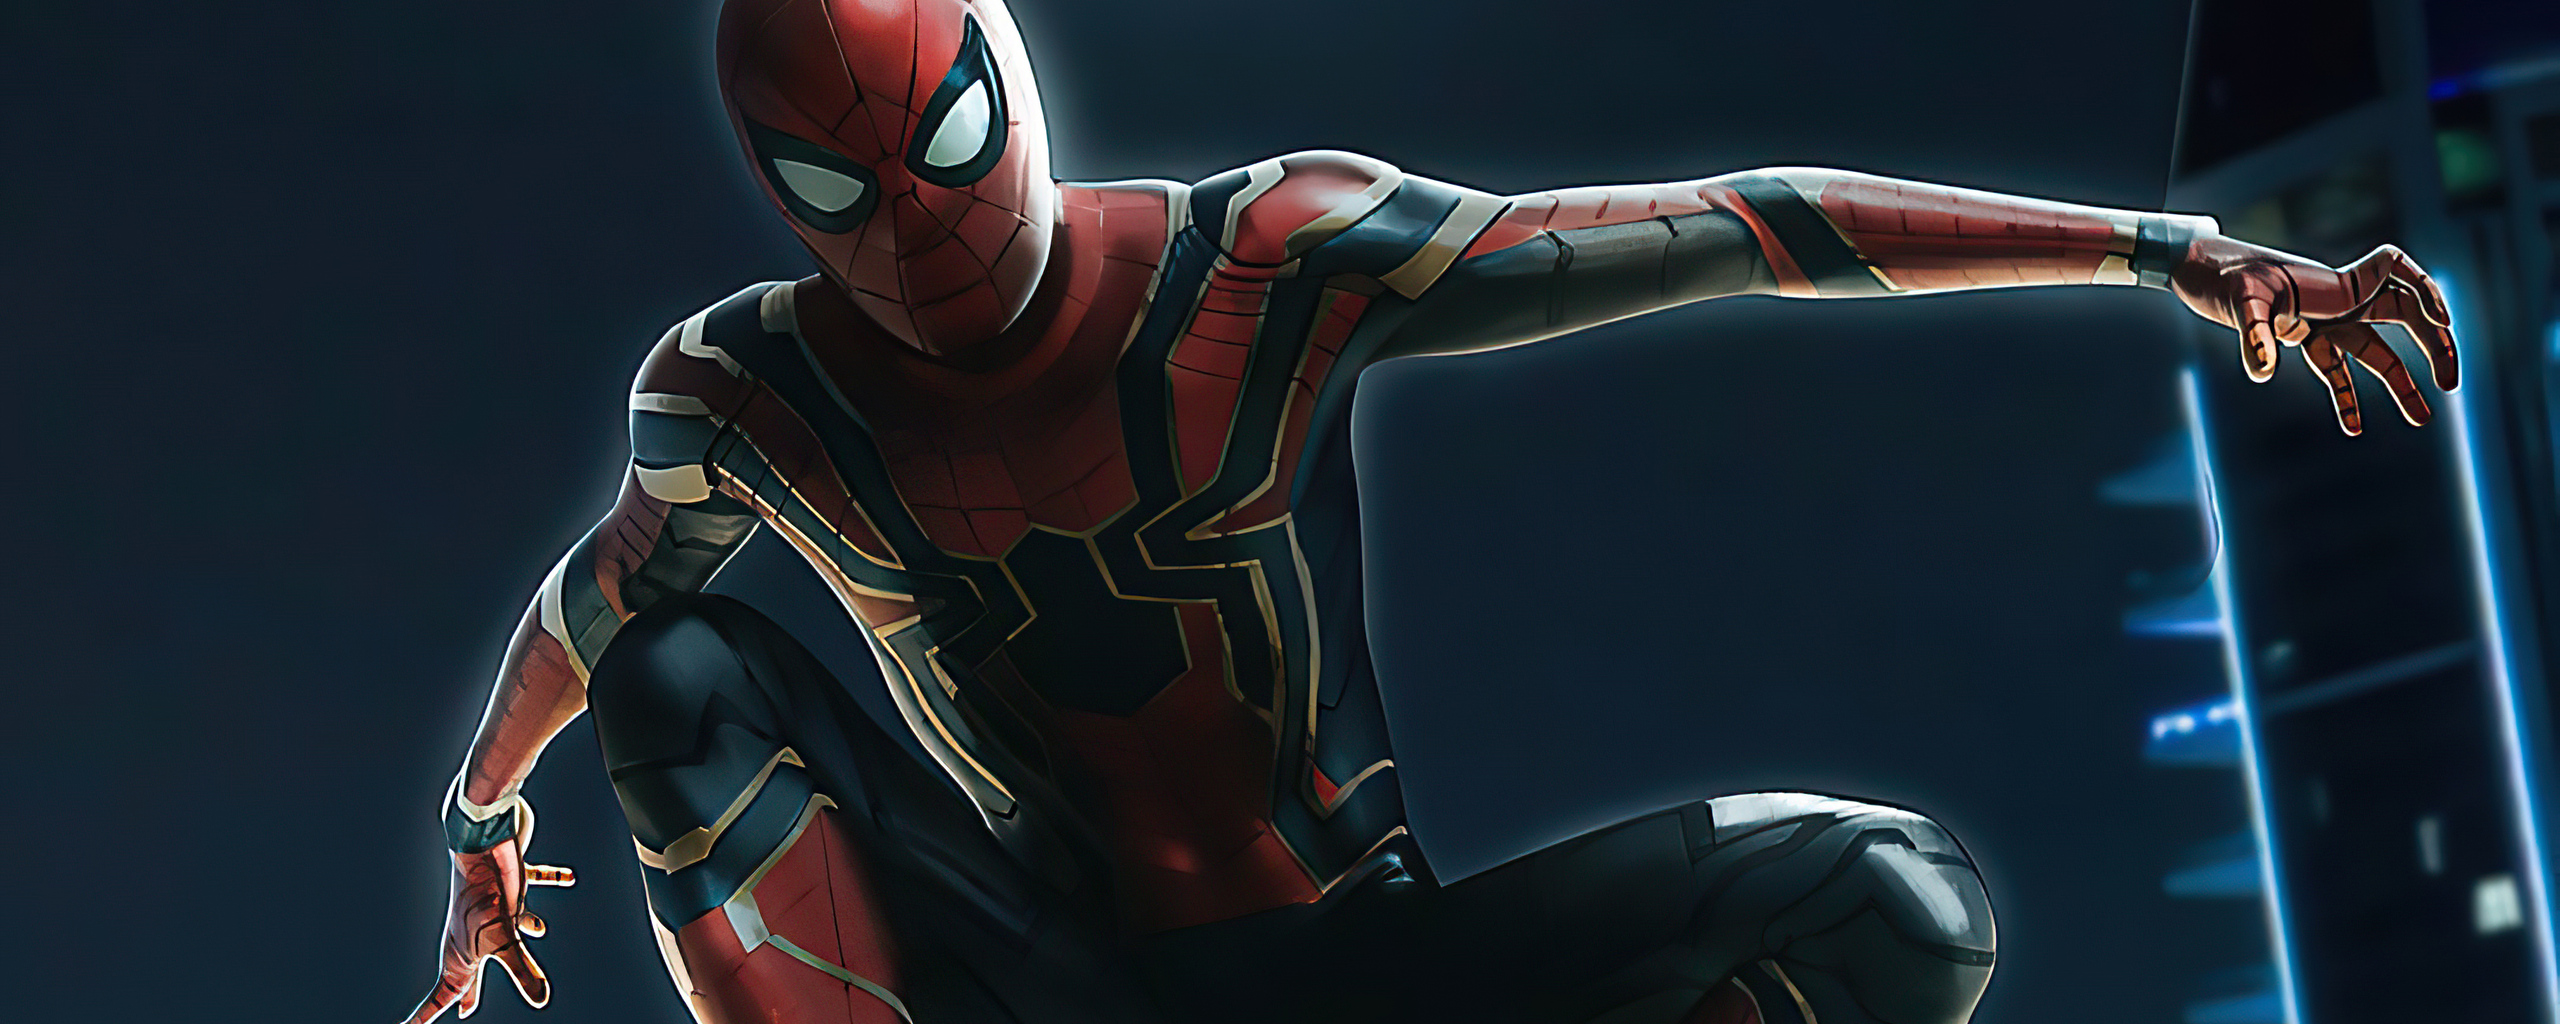 spiderman-iron-suit-4k-a1.jpg